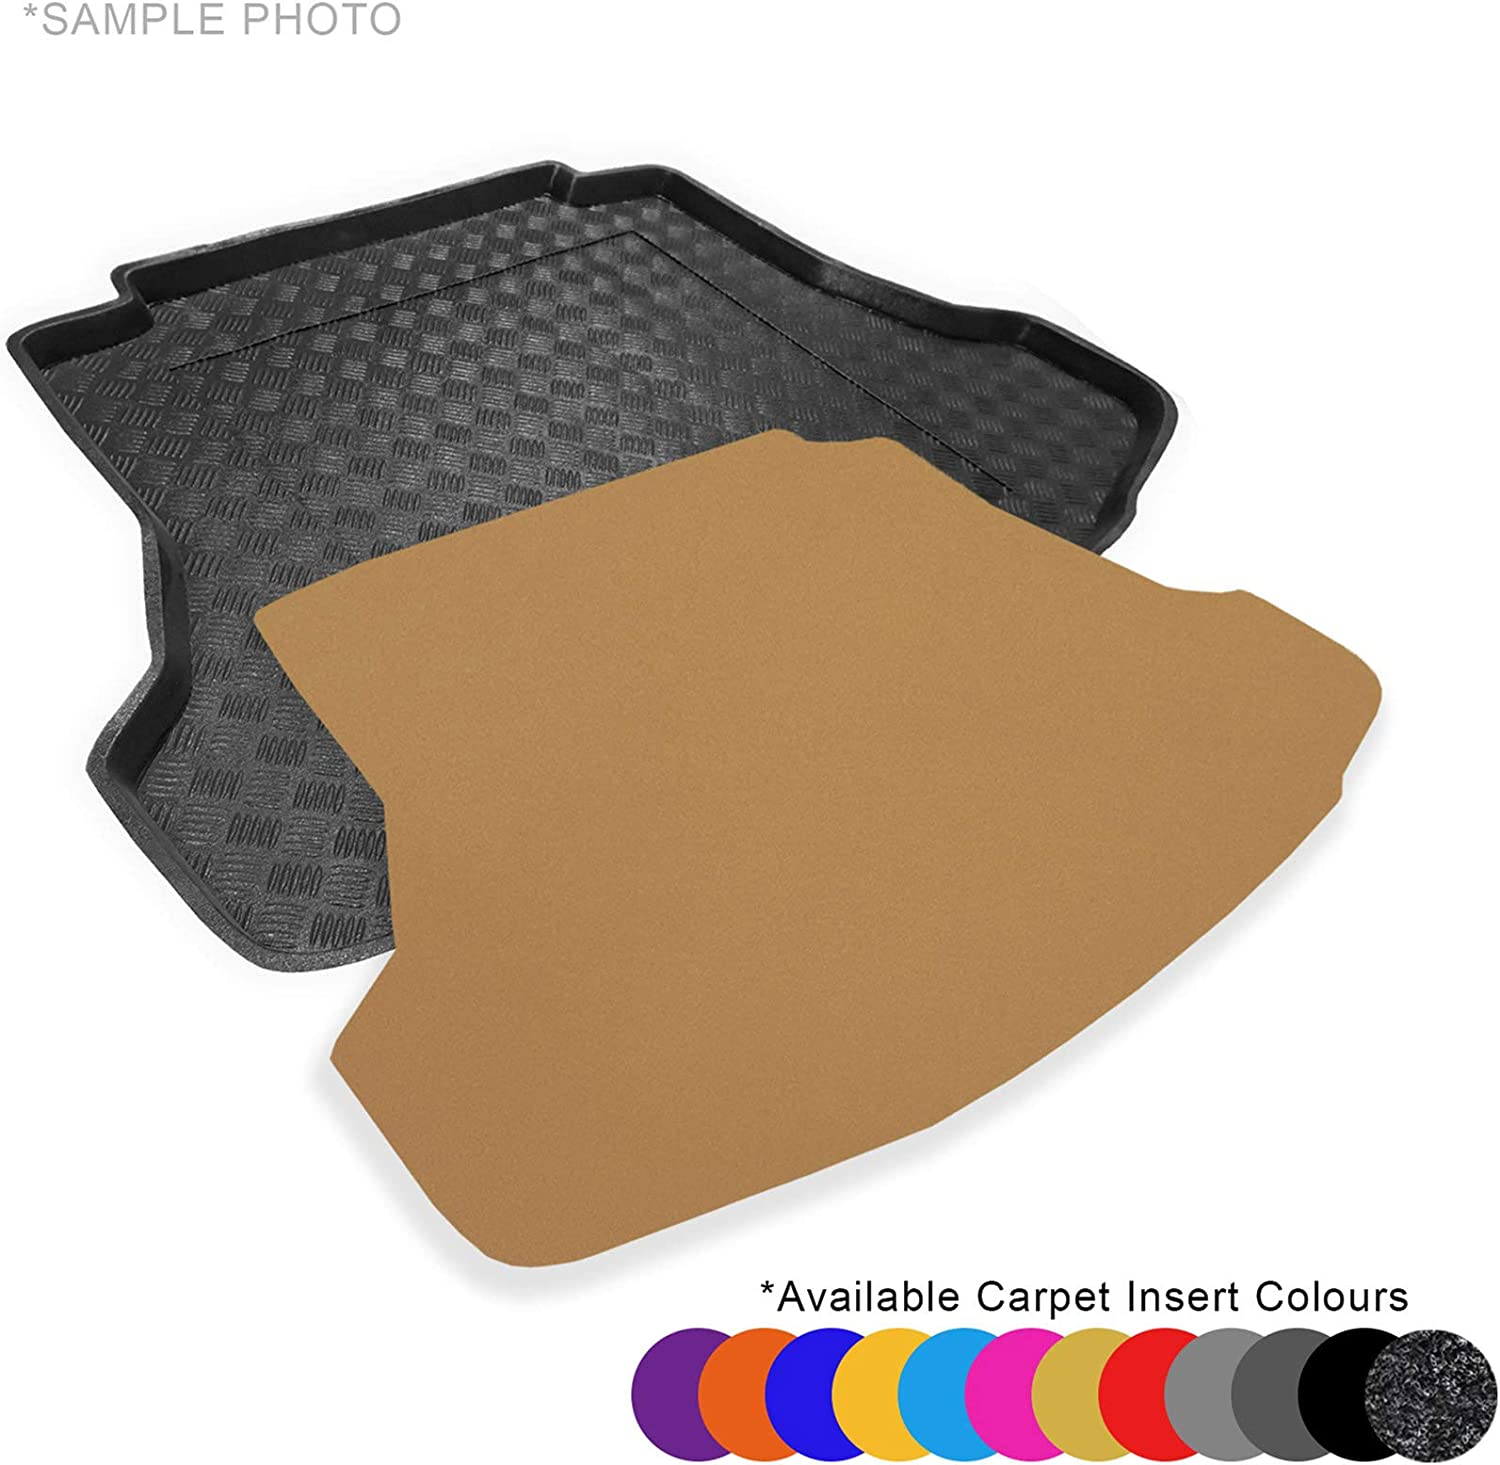 Fully Tailored PVC Boot Liner//Tray FREE Anthracite Carpet Insert CARMATS4U.COM S60 Saloon 2018